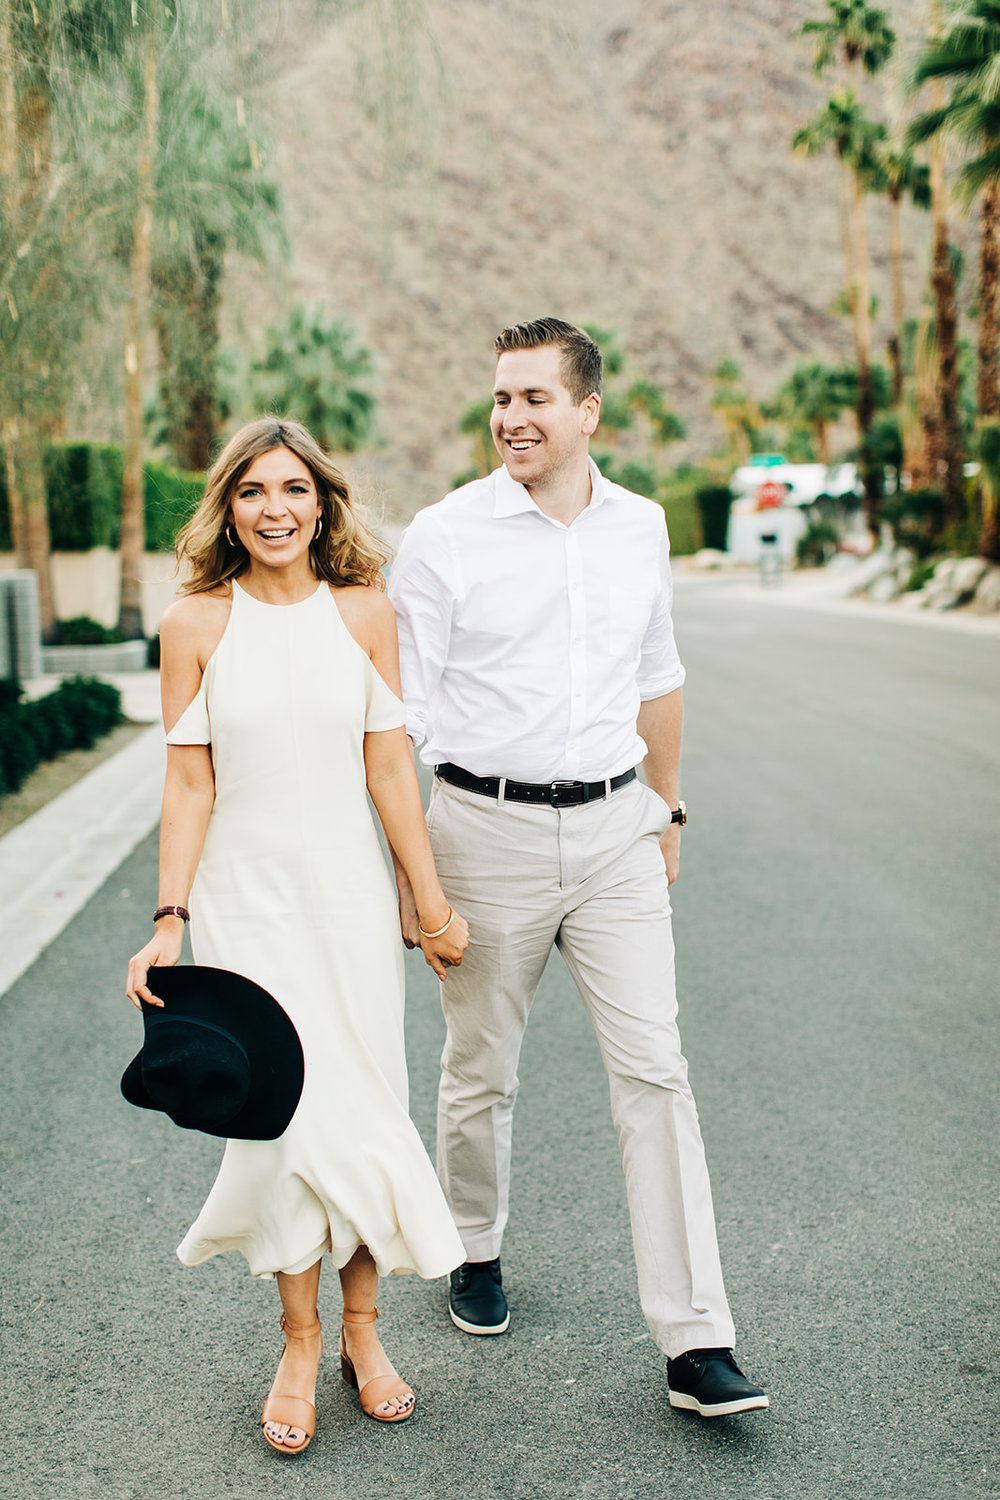 Paulina-Drew_Palm-Springs-Engagement-Photos_Clarisse-Rae_Southern-California-Wedding-Photographer-35